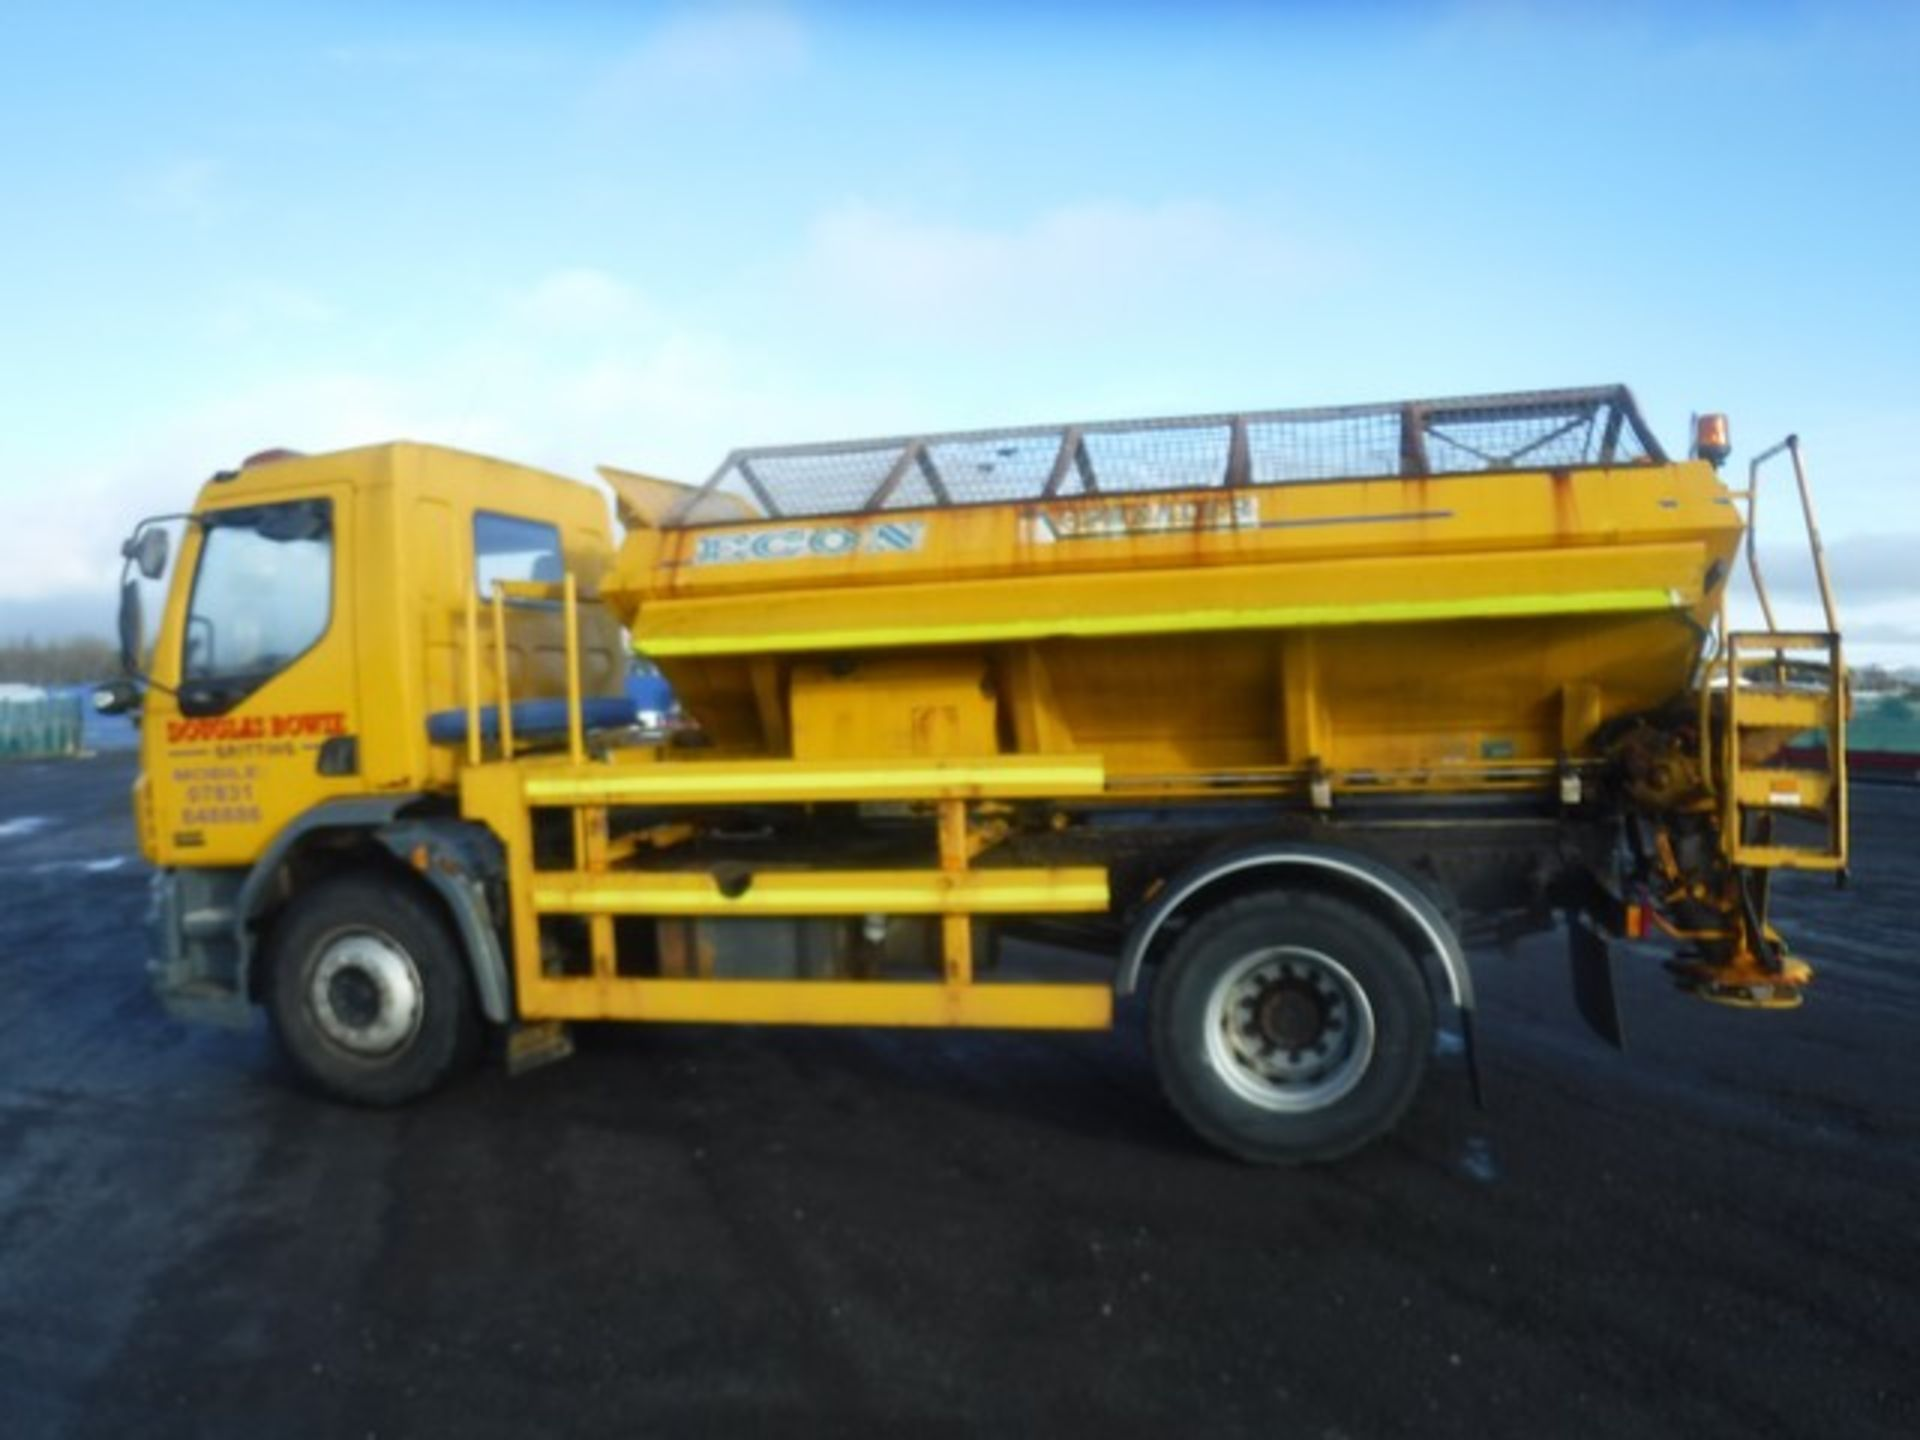 Lot 1722 - DAF TRUCKS FA LF55.220 - 0cc